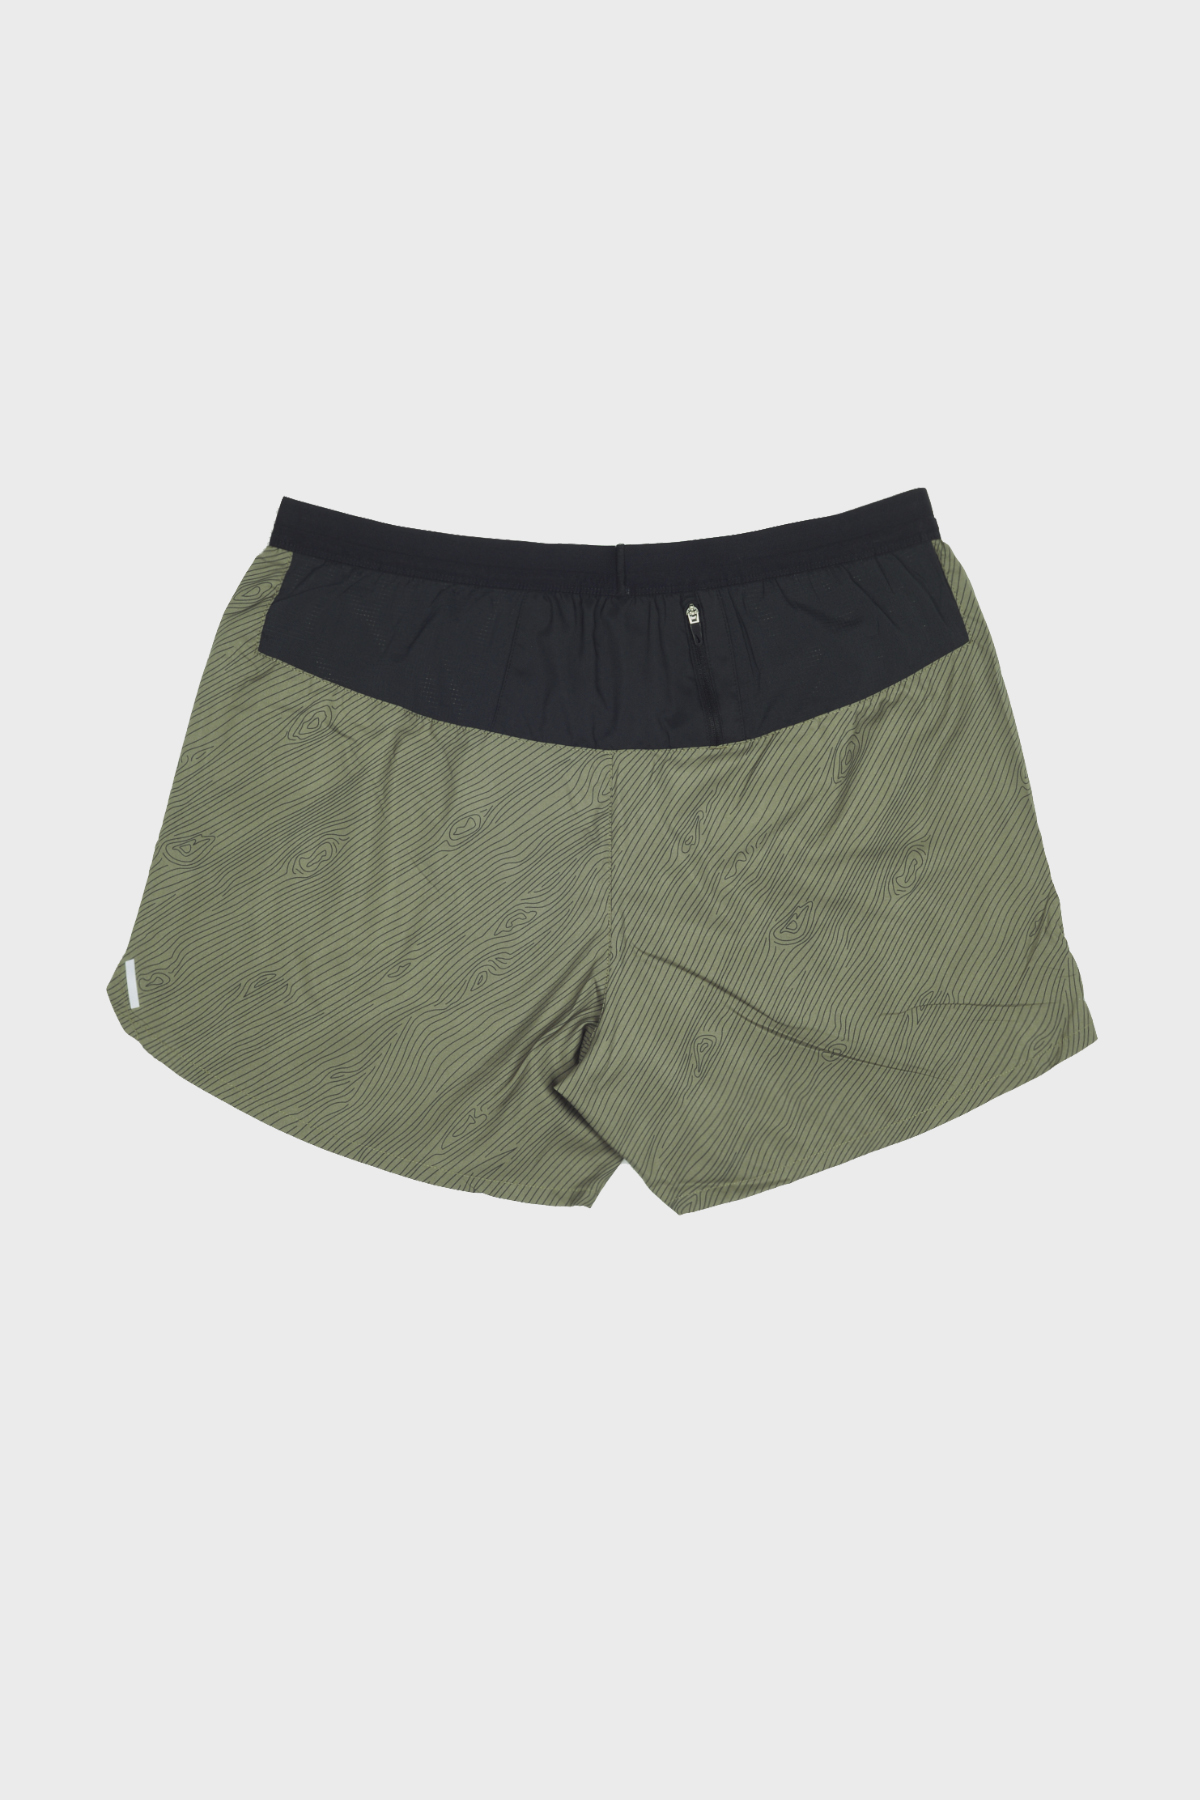 Nike - flex stride short 5'' trail  - Kaki